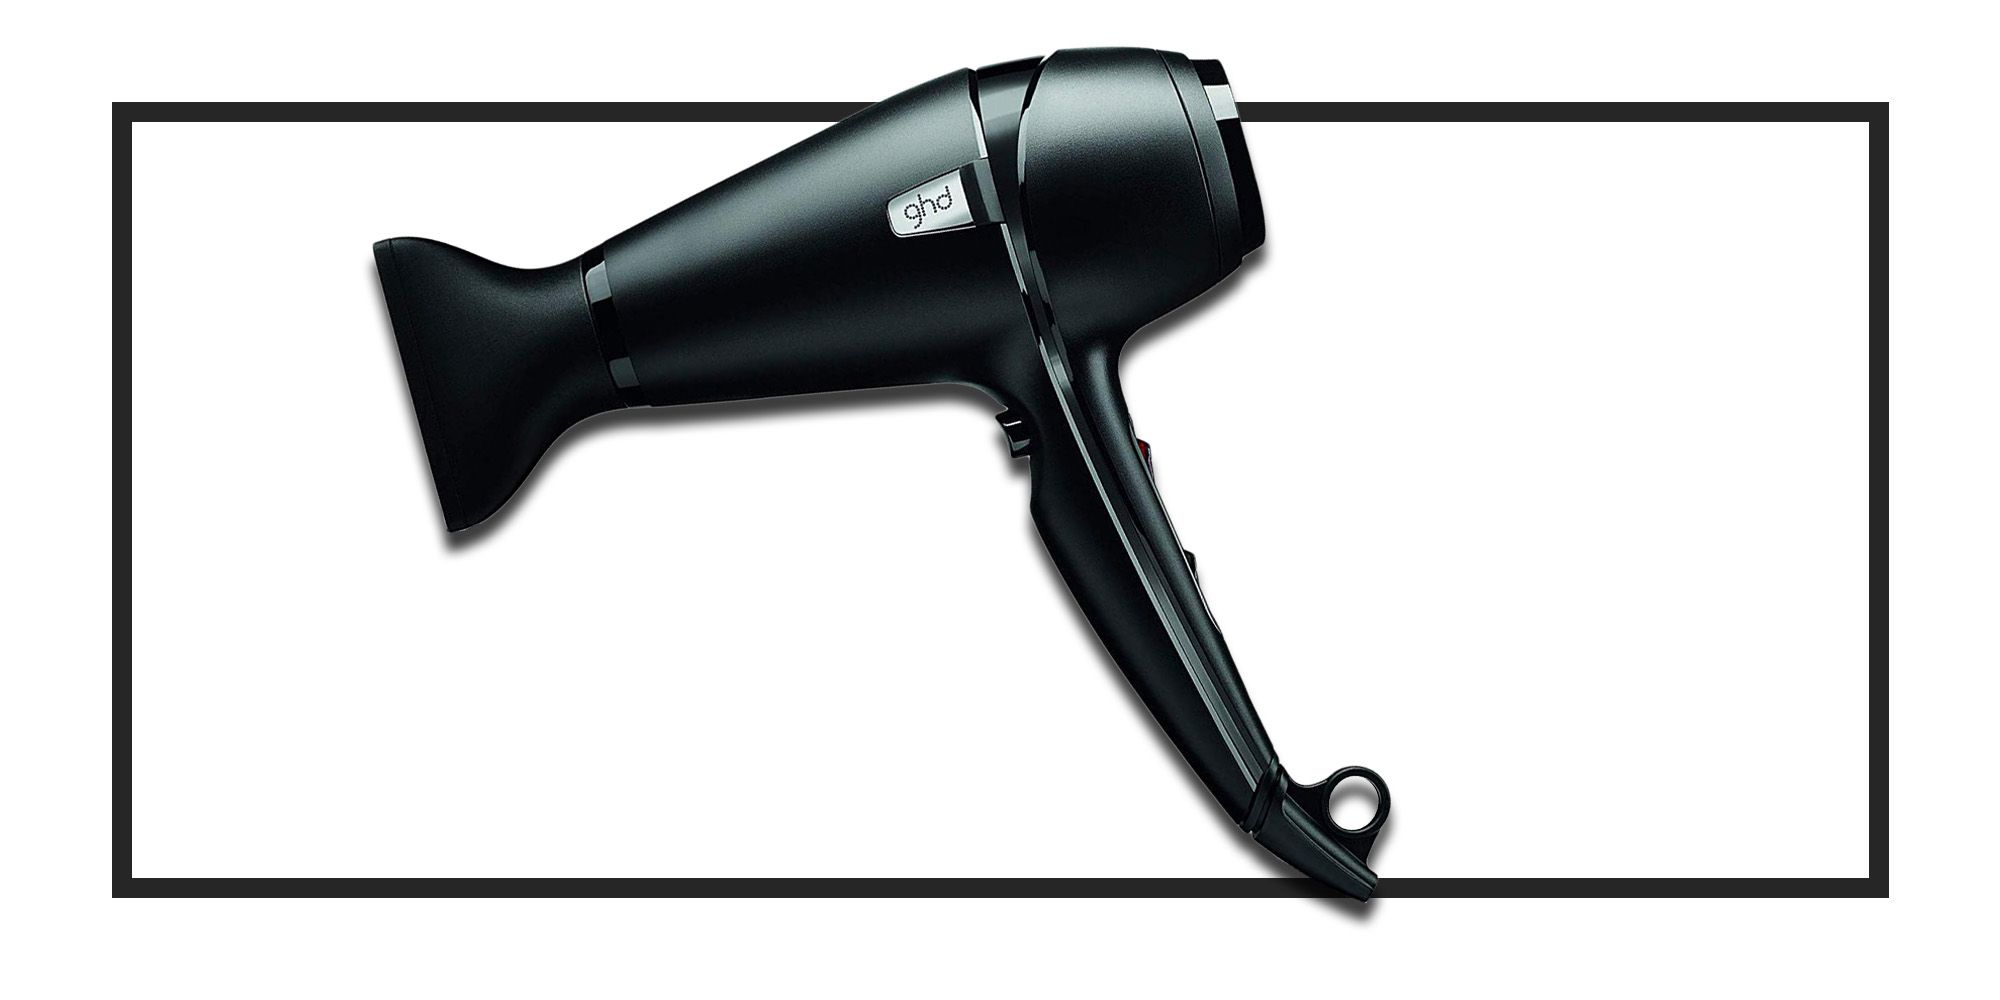 The Ghd Air hair dryer is more than 30% off in the Amazon Prime Day sale